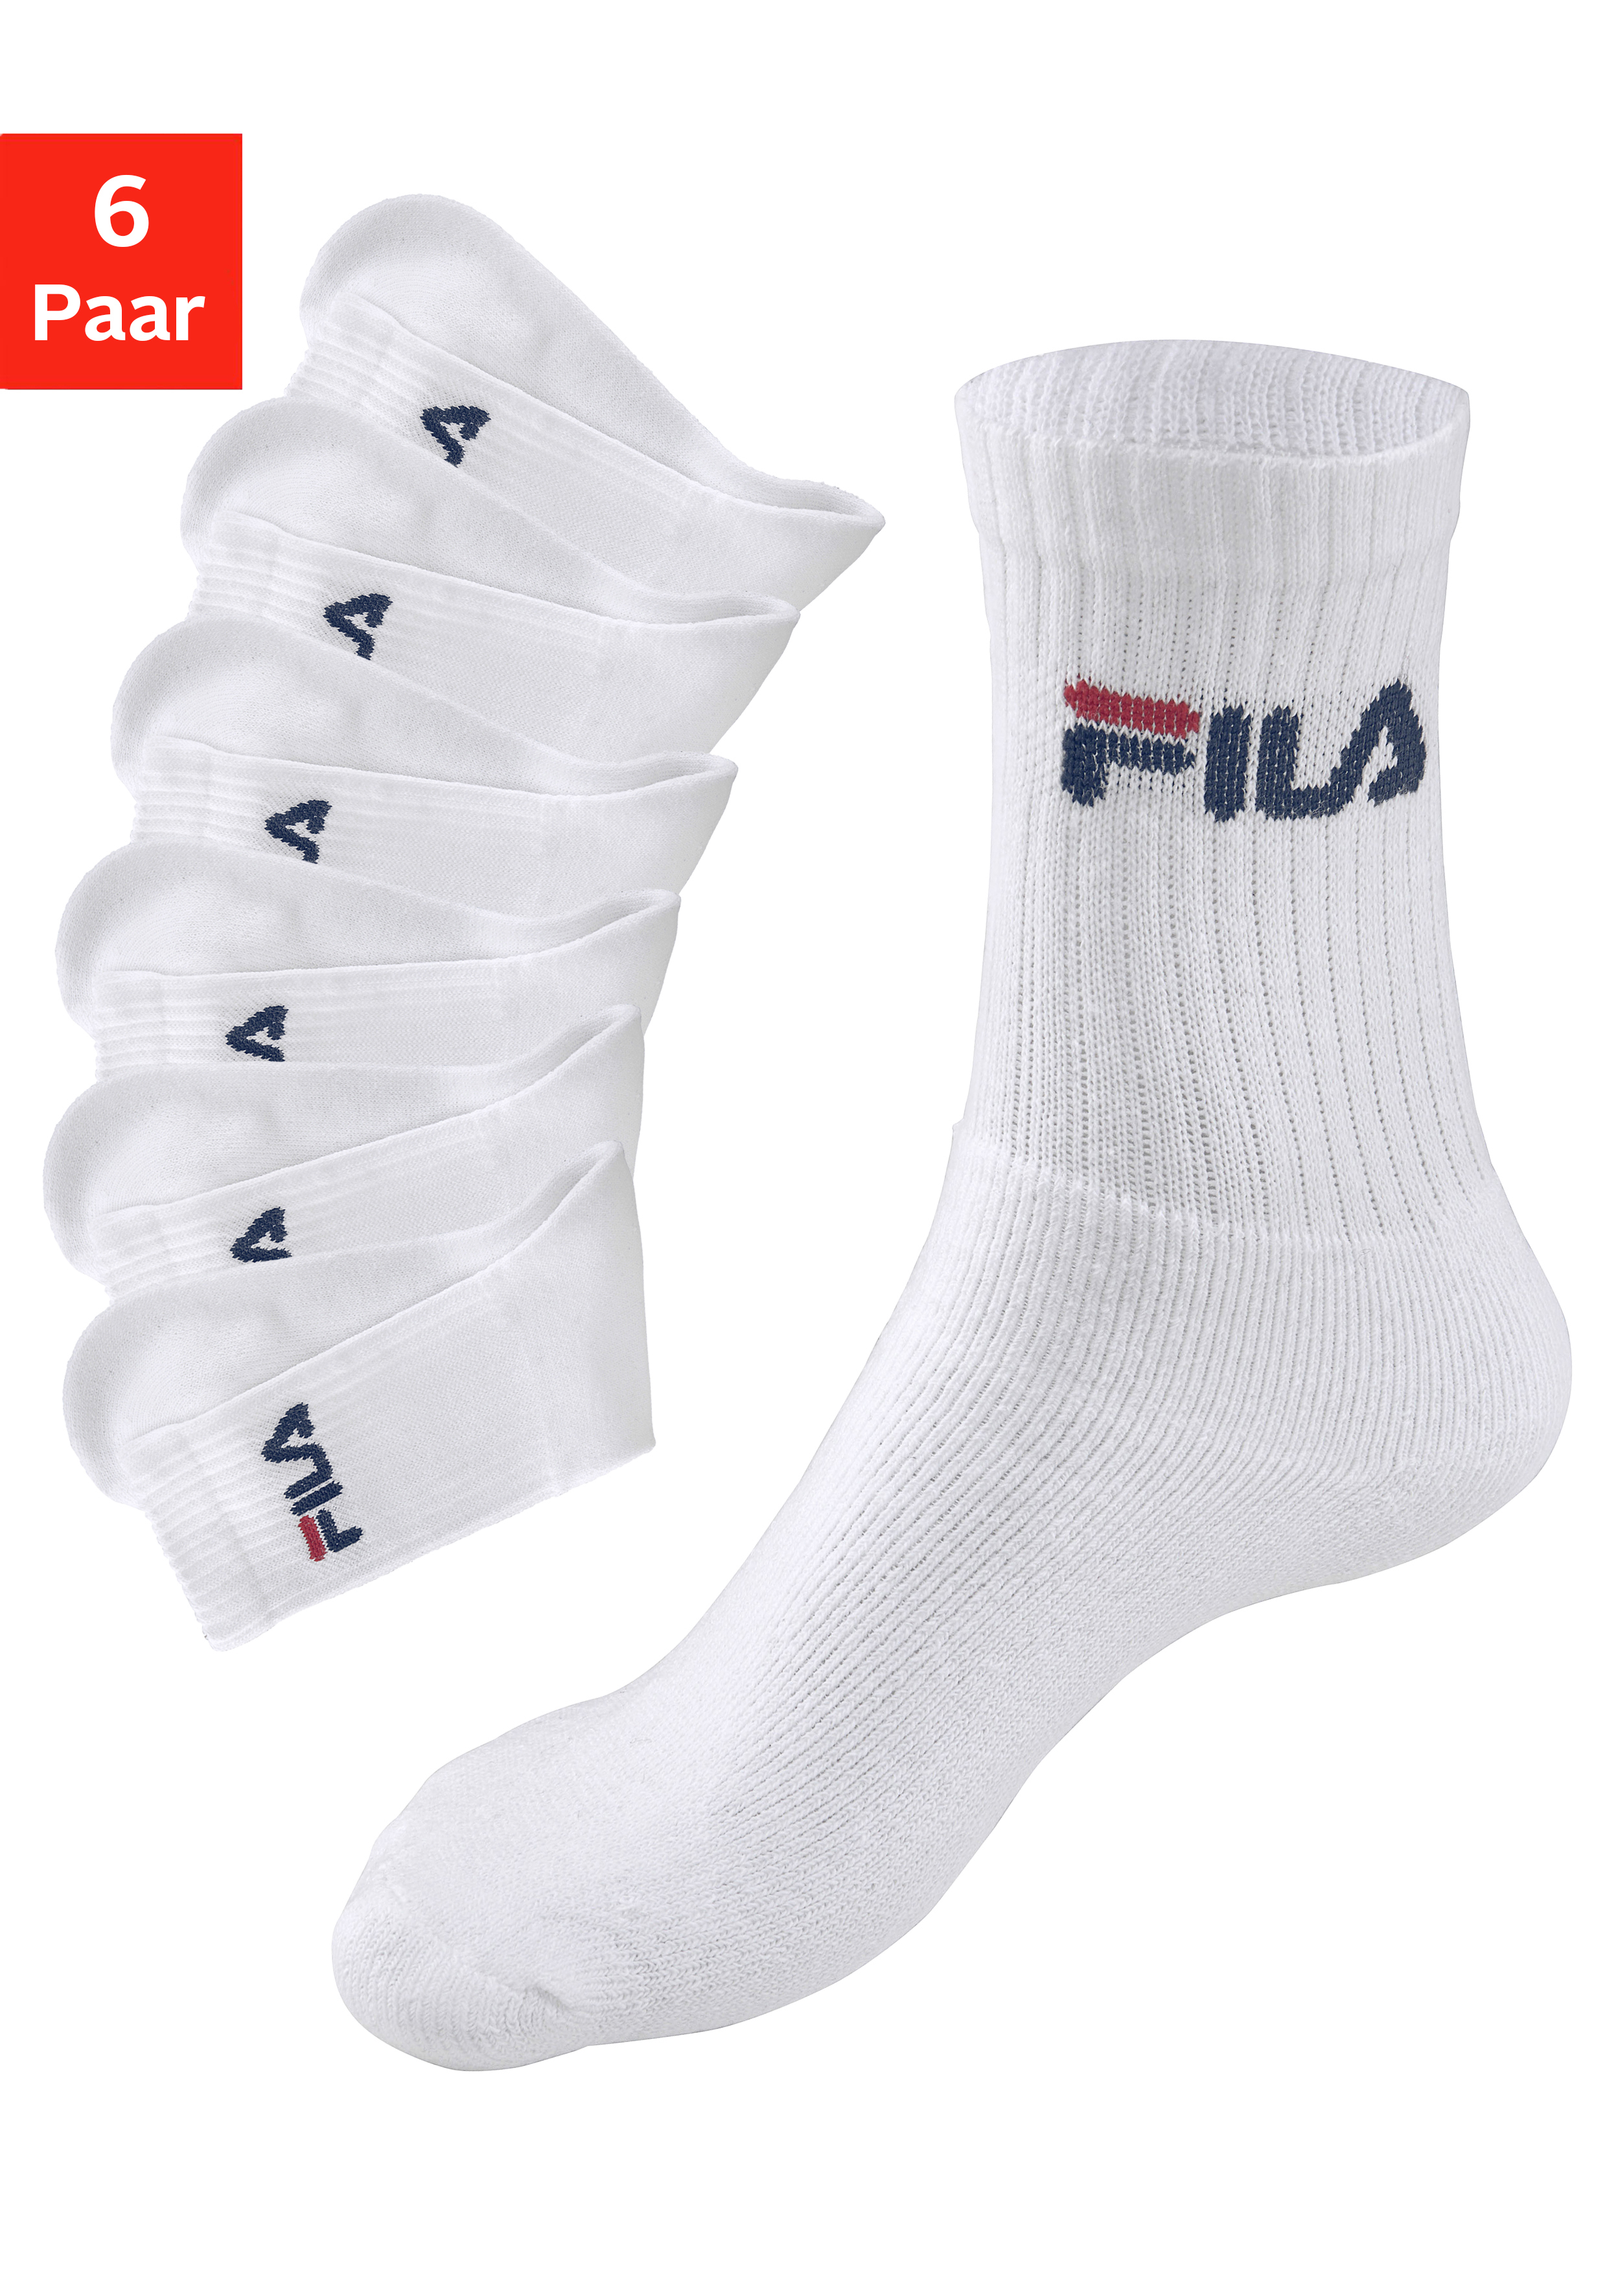 Fila Tennissocken (6 Paar)